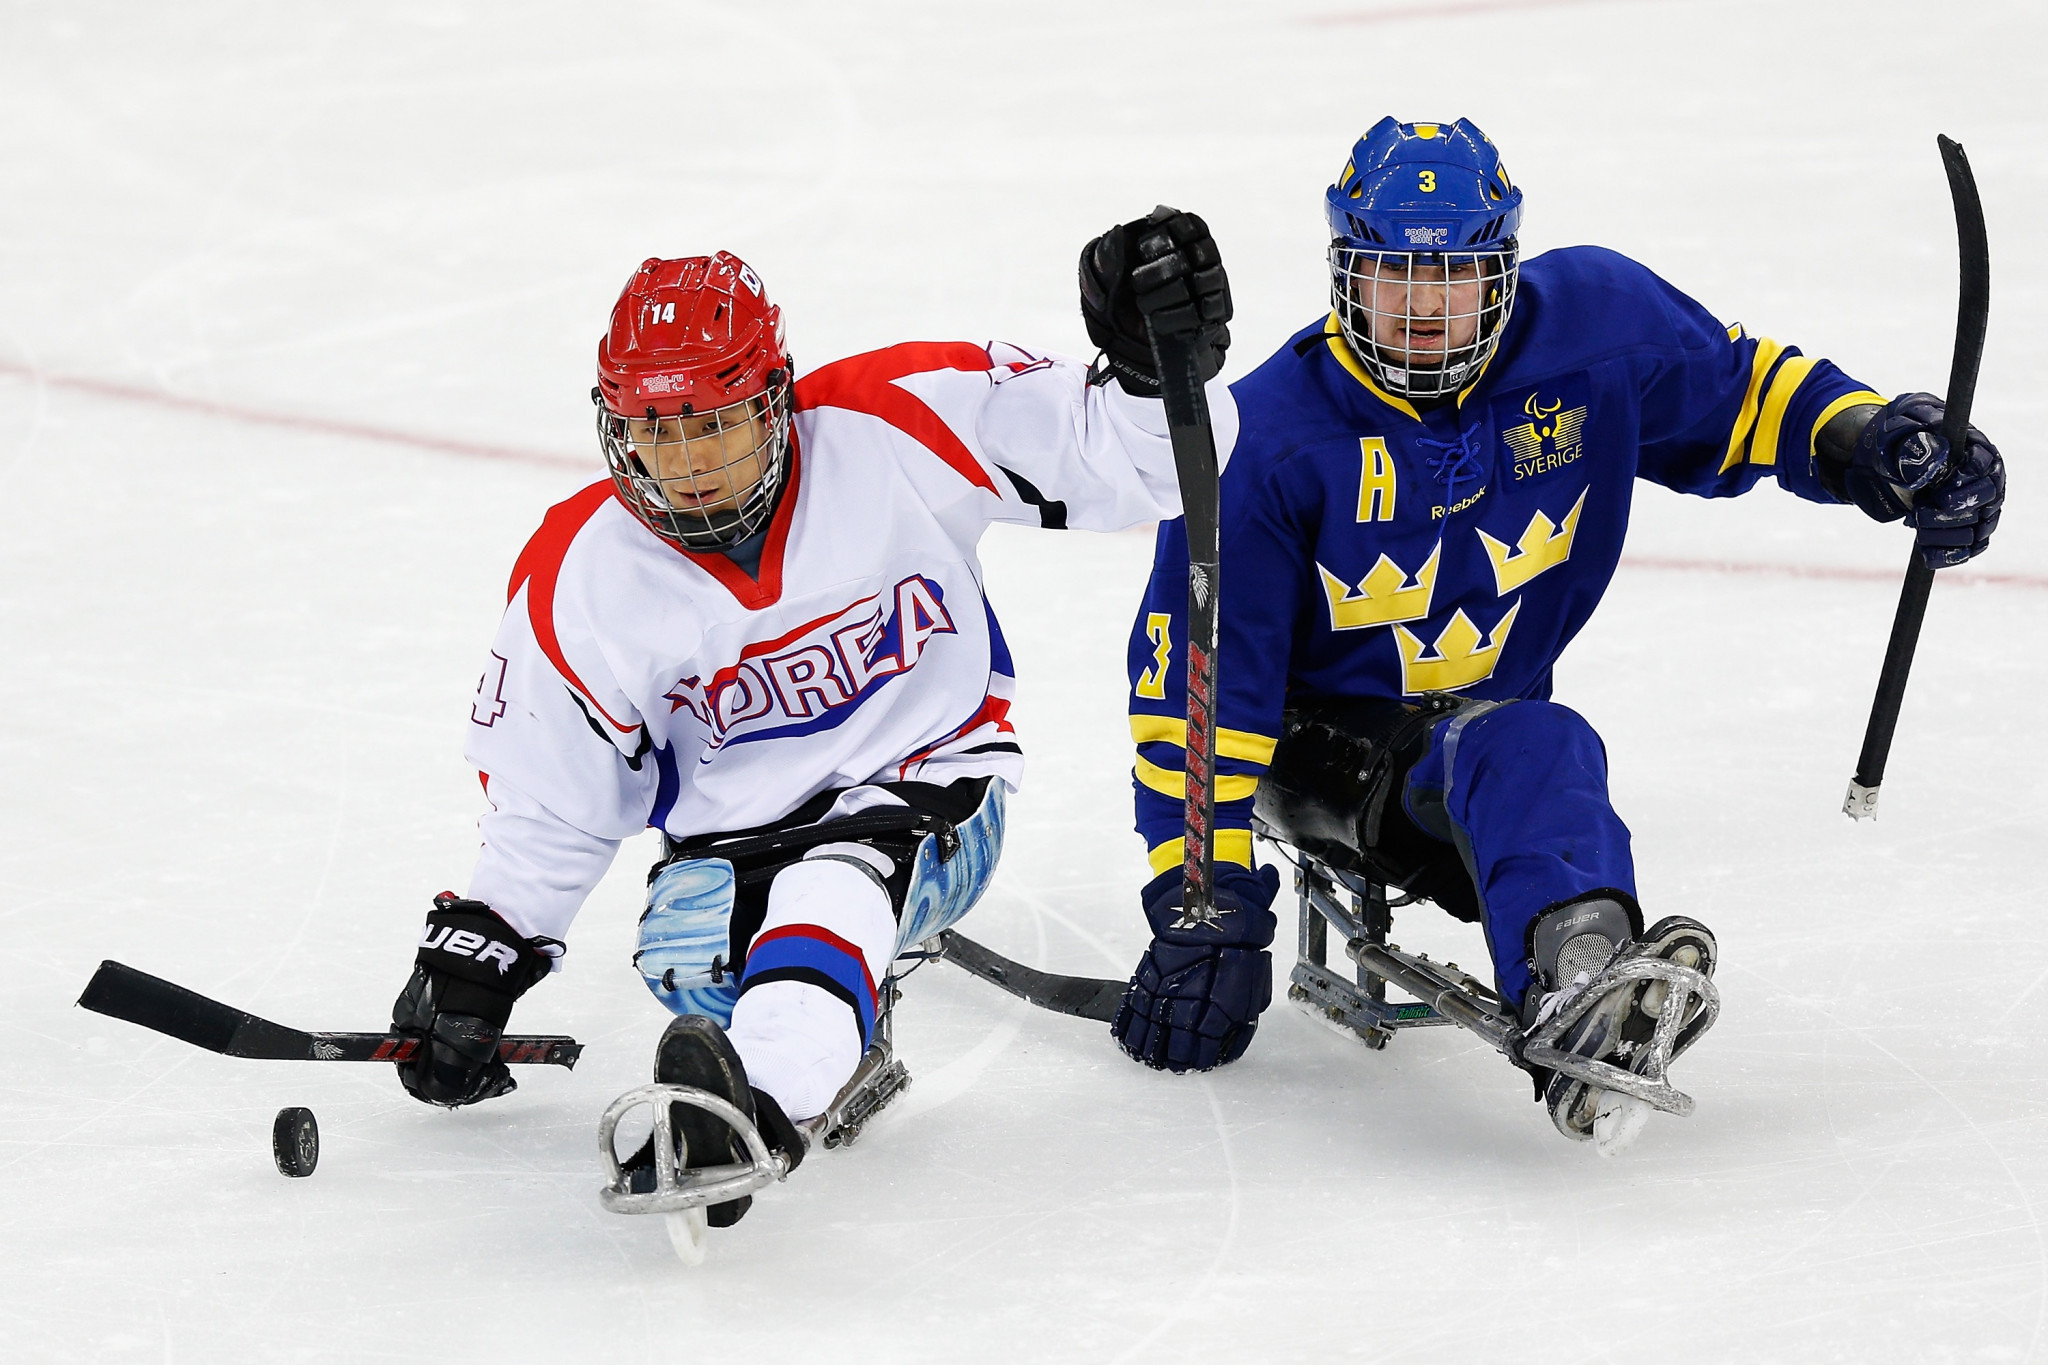 South Korean ice hockey player Seung-Hwan Jung completes the line-up ©Getty Images